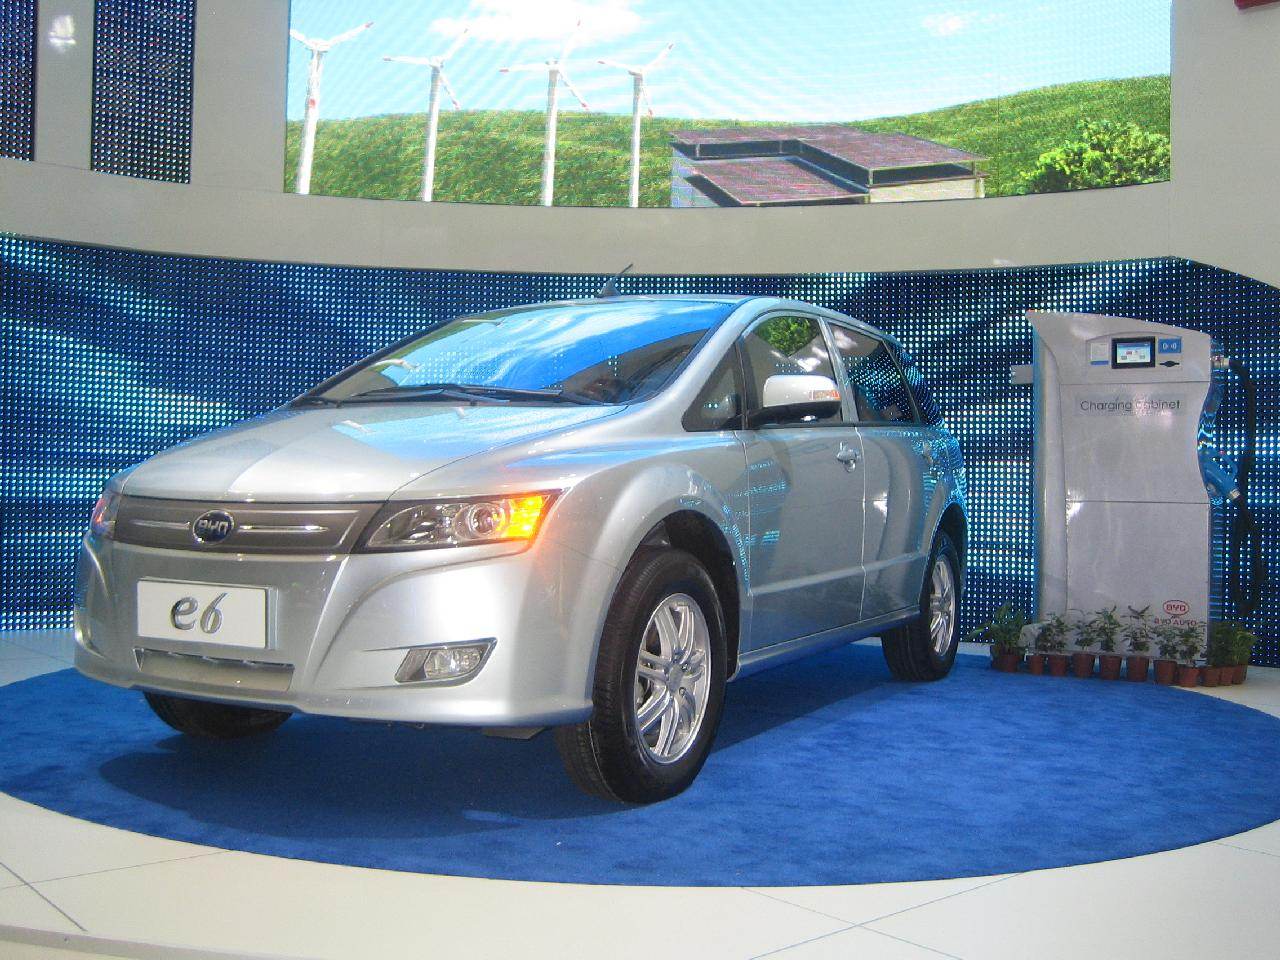 2012 BYD e6 Electric Crossover To Cost $35,000, 200-Mile Range2012 BYD e6 Electric Crossover To Cost $35,000, 200-Mile Range